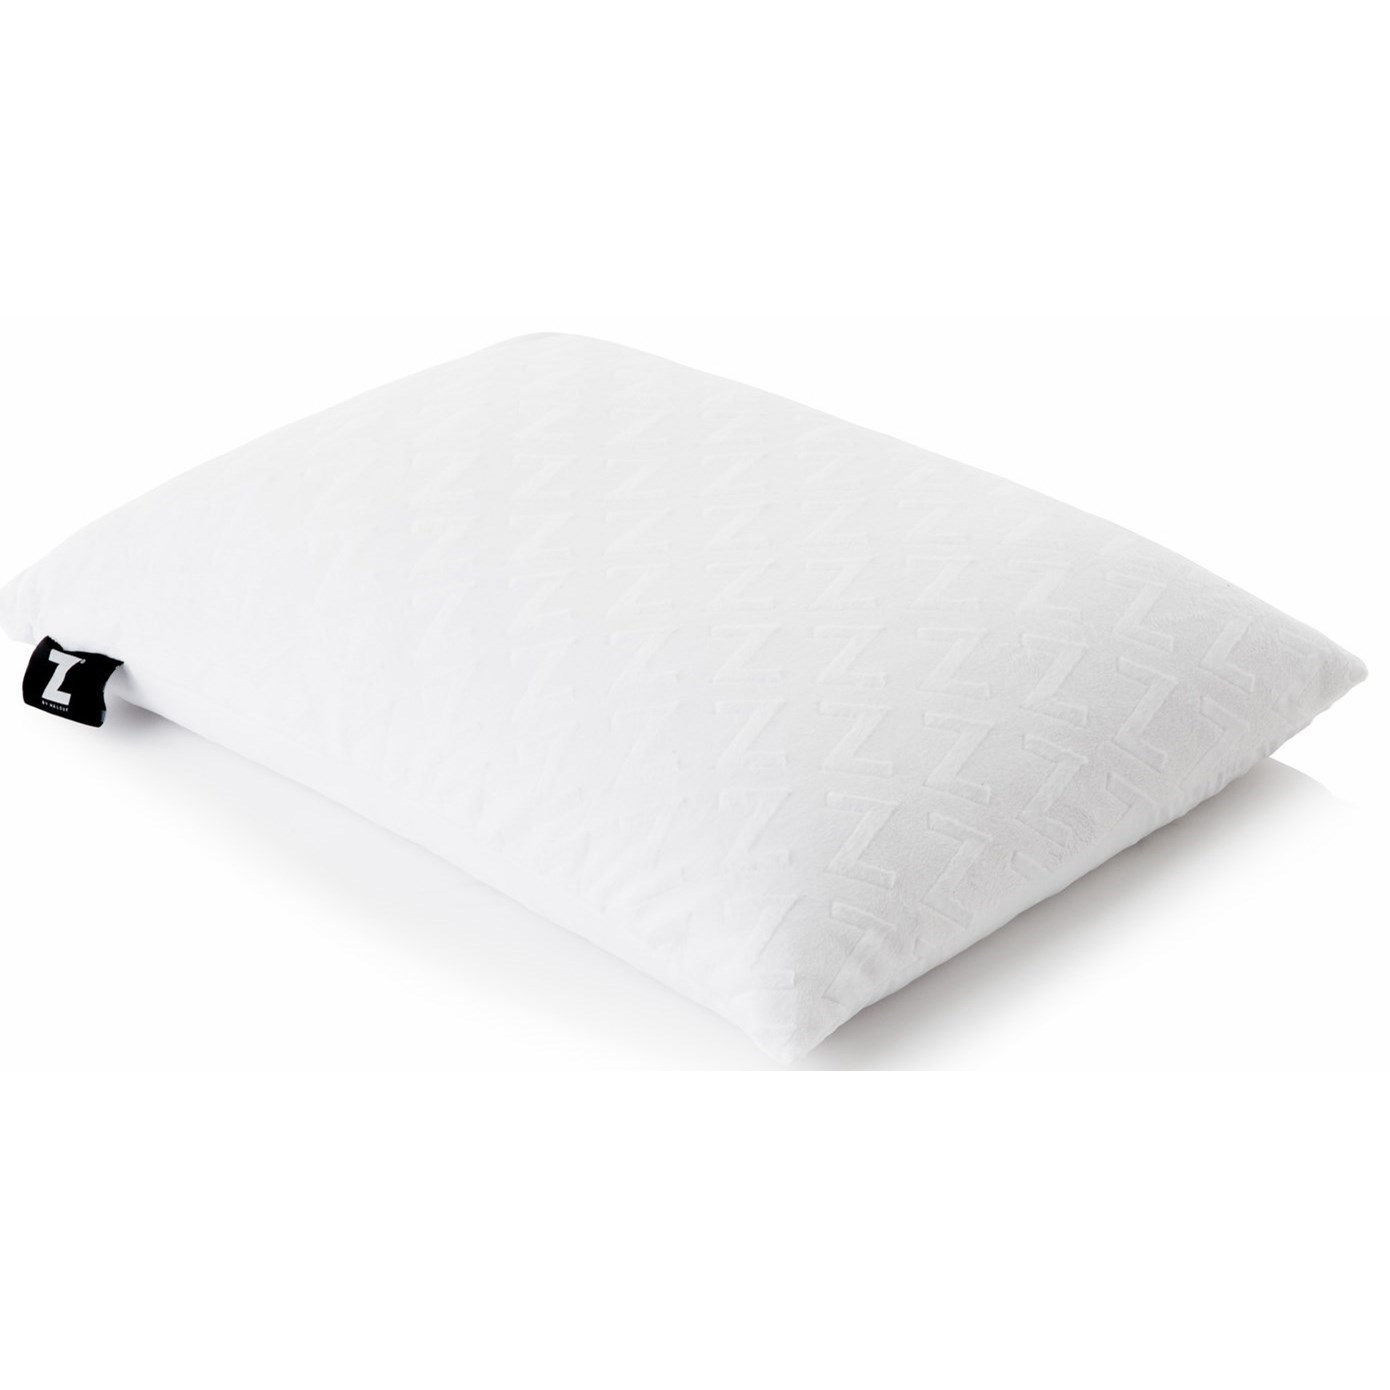 Malouf Shredded Latex King Shredded Latex Pillow - Item Number: ZZKK00SX